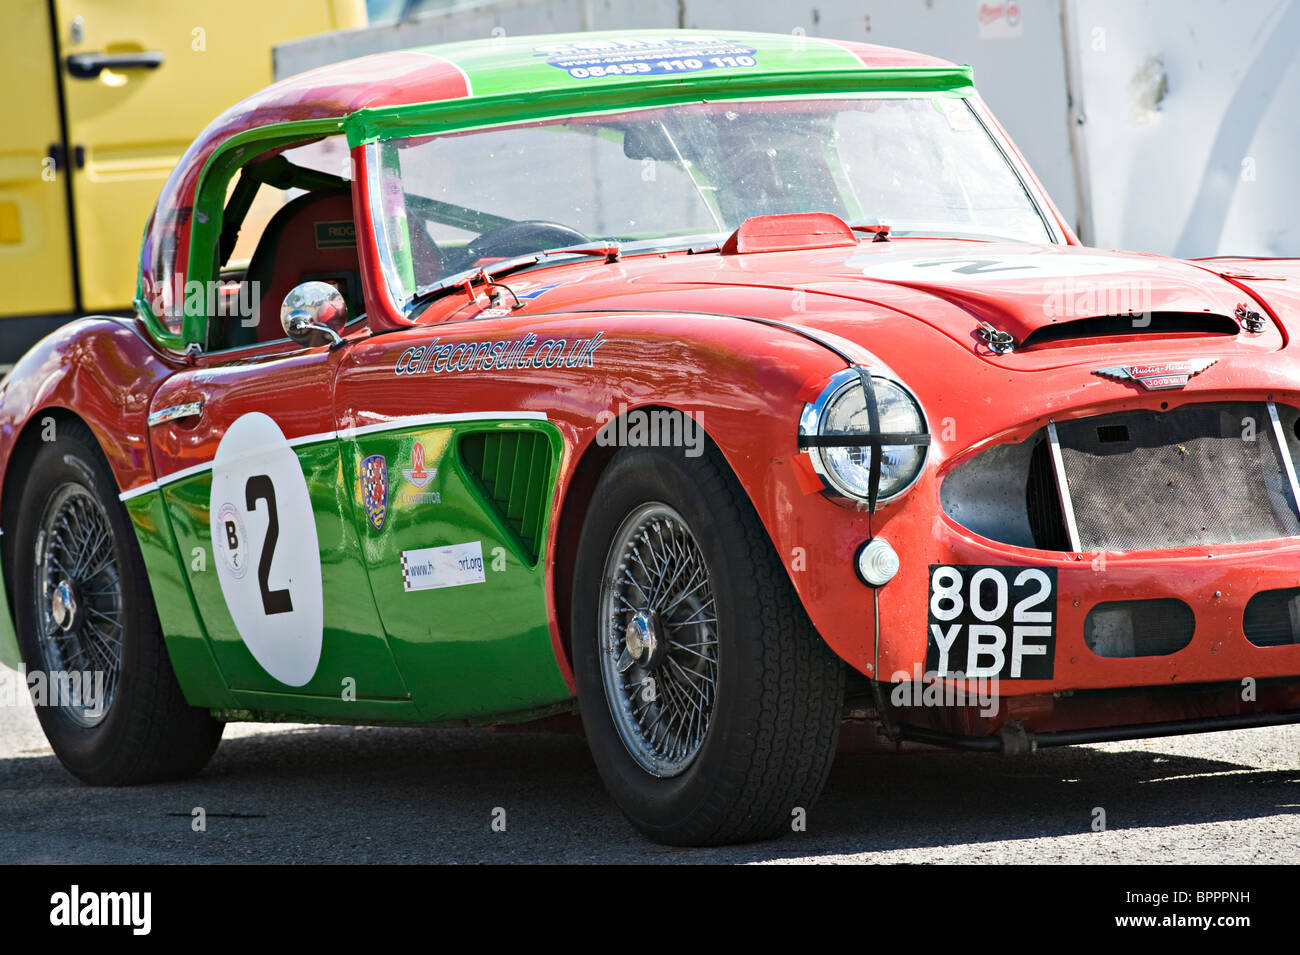 Austin Healey 3000 Historic Racing Car in the Paddock at Oulton Park Motor Racing Circuit Cheshire England United - Stock Image